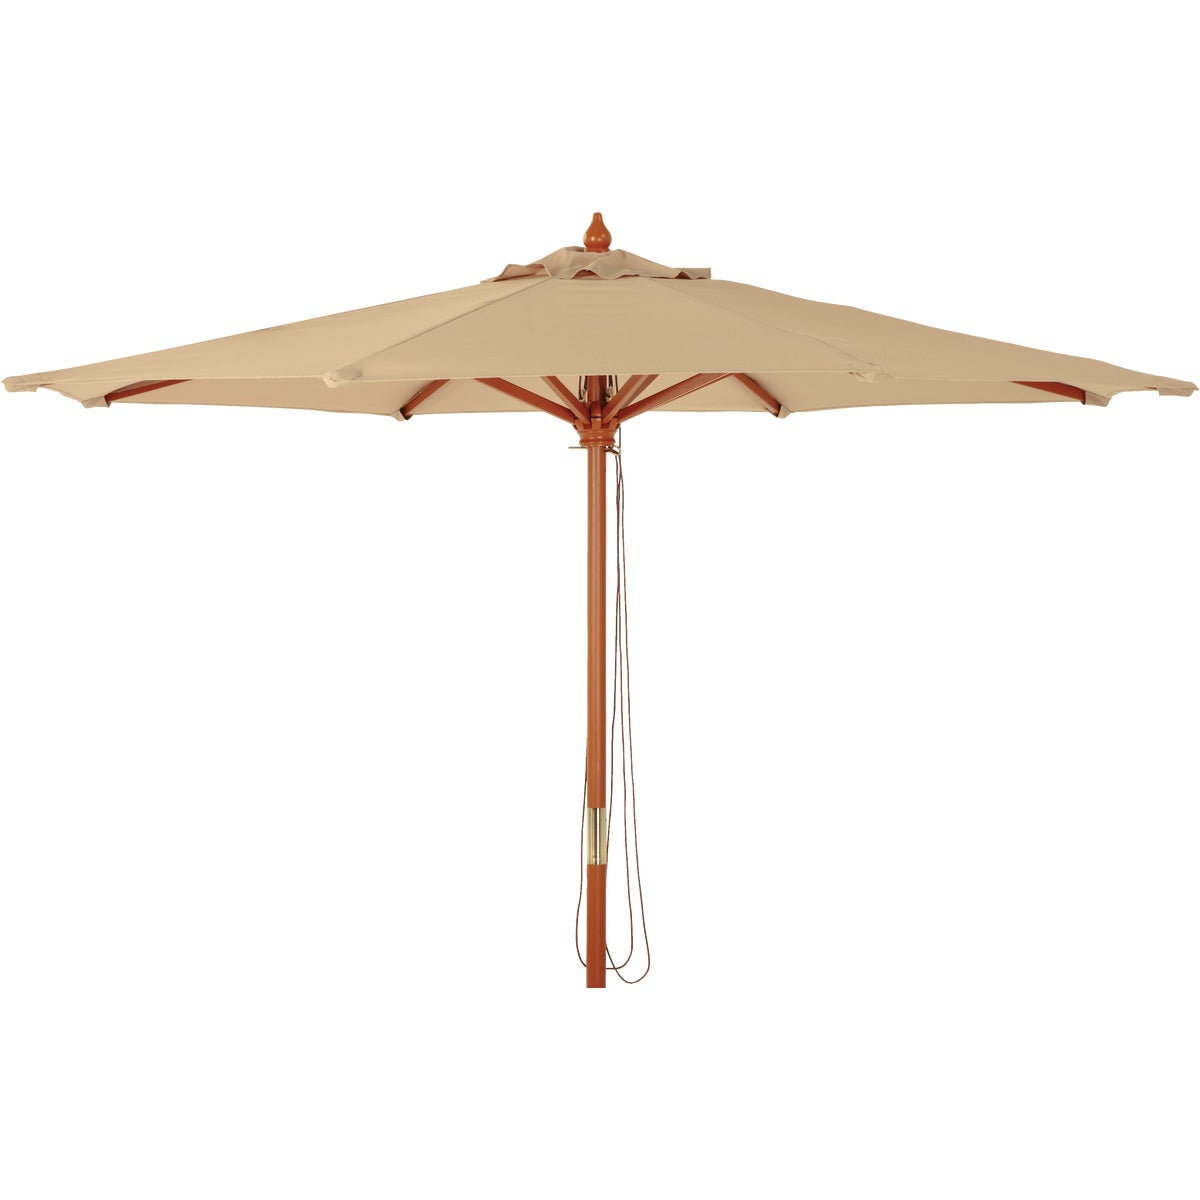 9'TAN WD MARKET UMBRELLA - TJWU-003A-270-TN by Do it Best